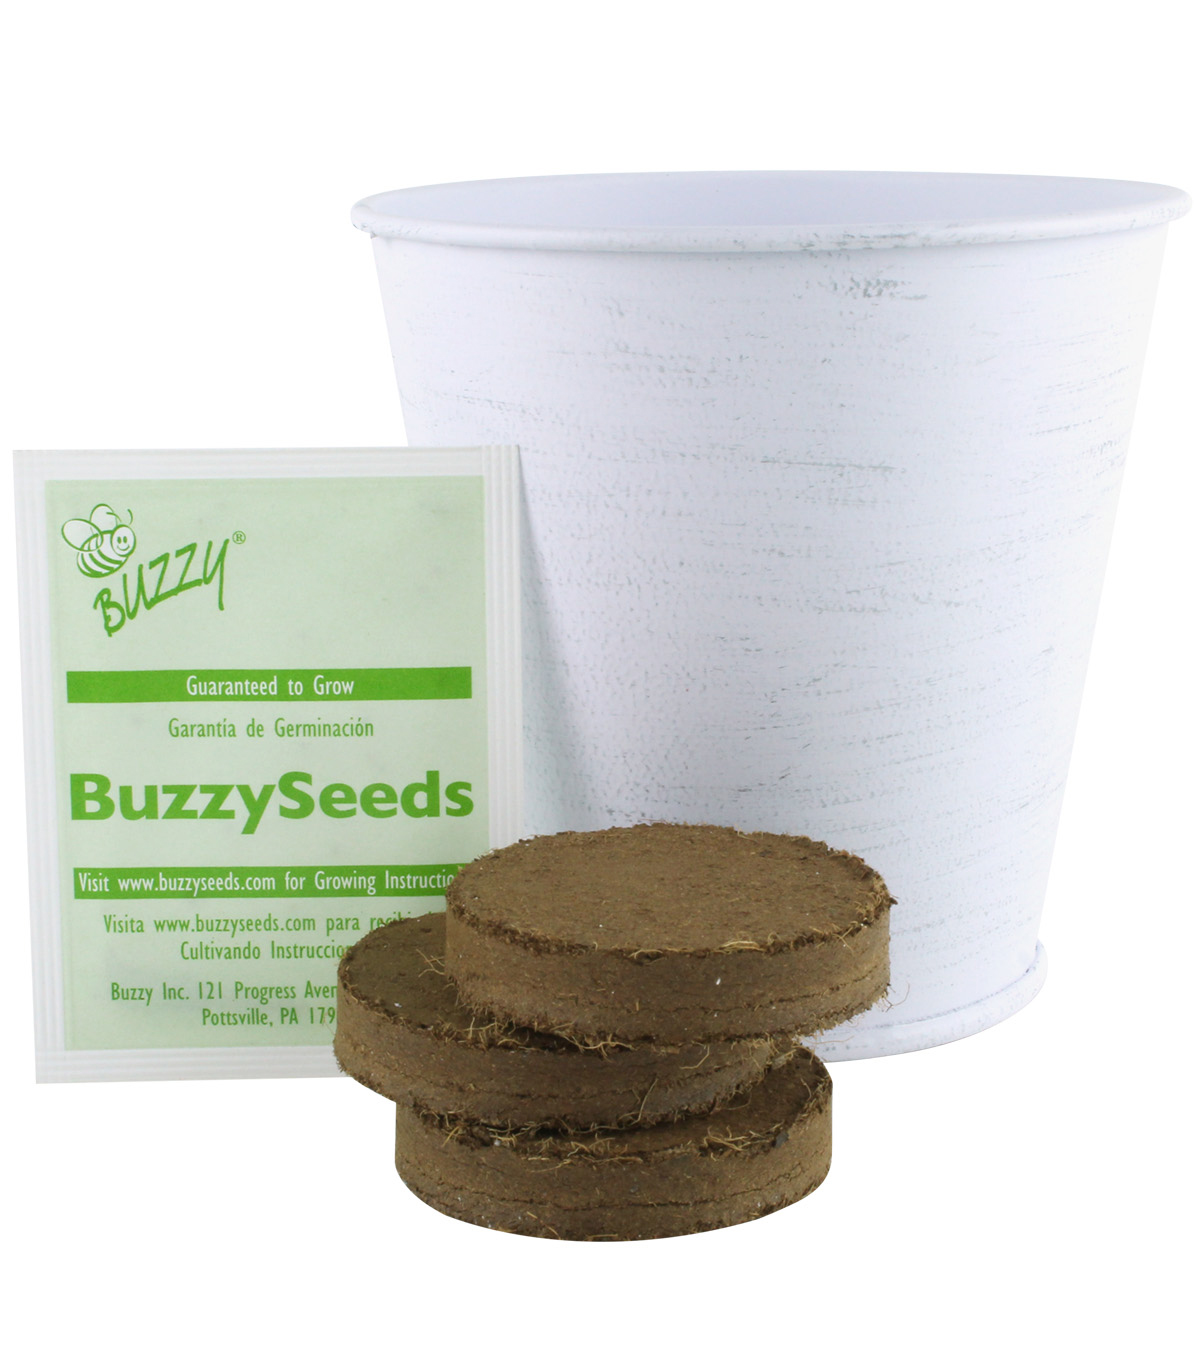 Buzzy Daisy DIY Grow Kit with Whitewashed Metal Pail